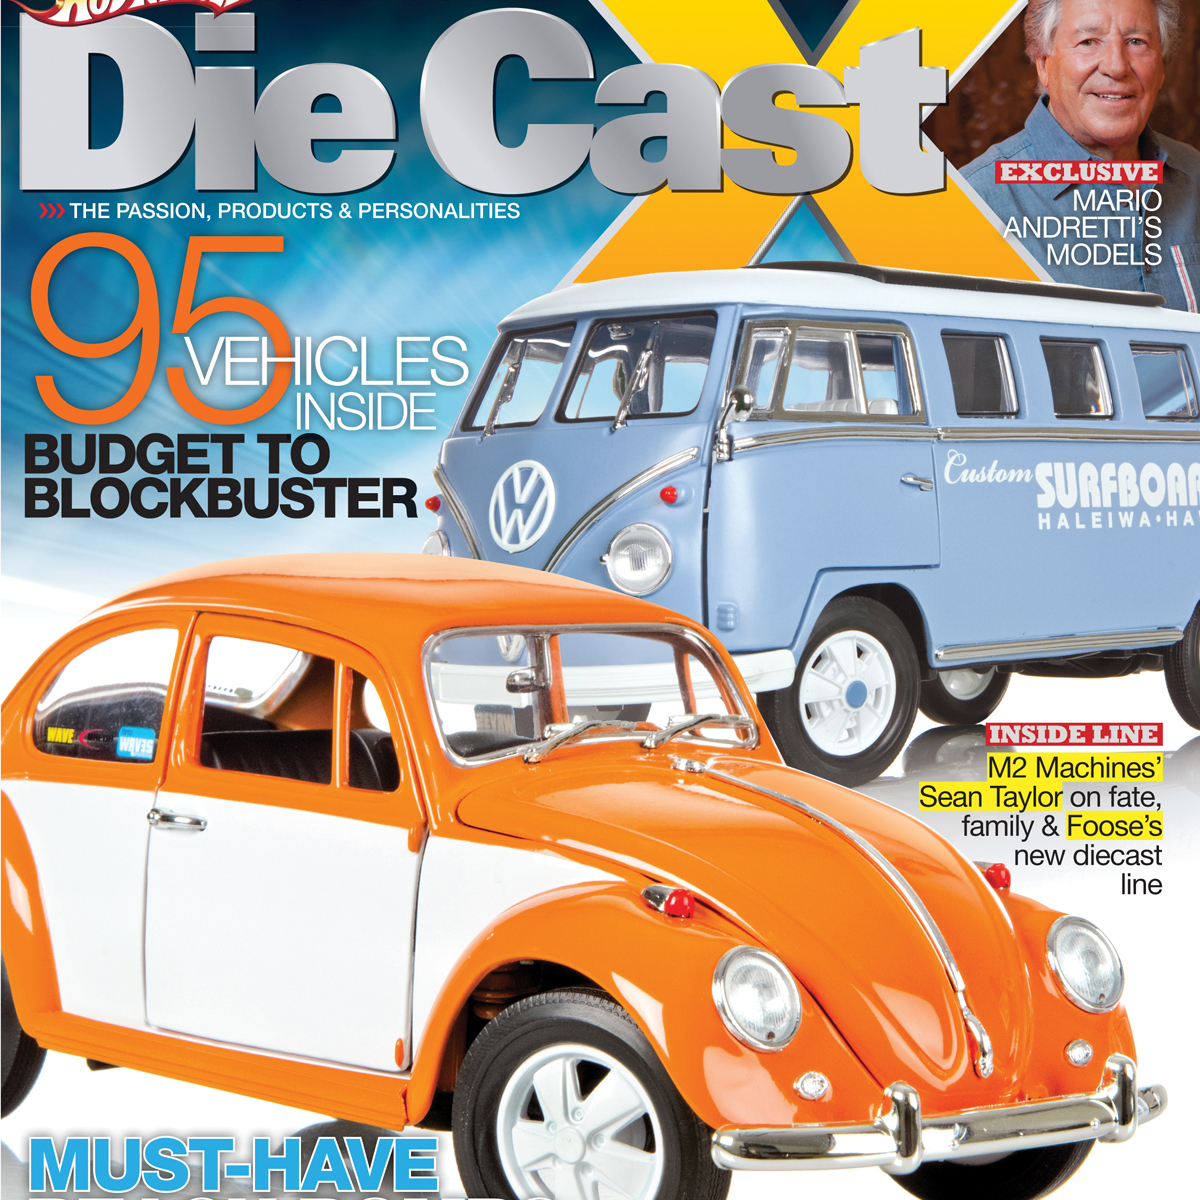 Die Cast X Spring 2012 issue on sale now.  Check out some pics from the magazine!